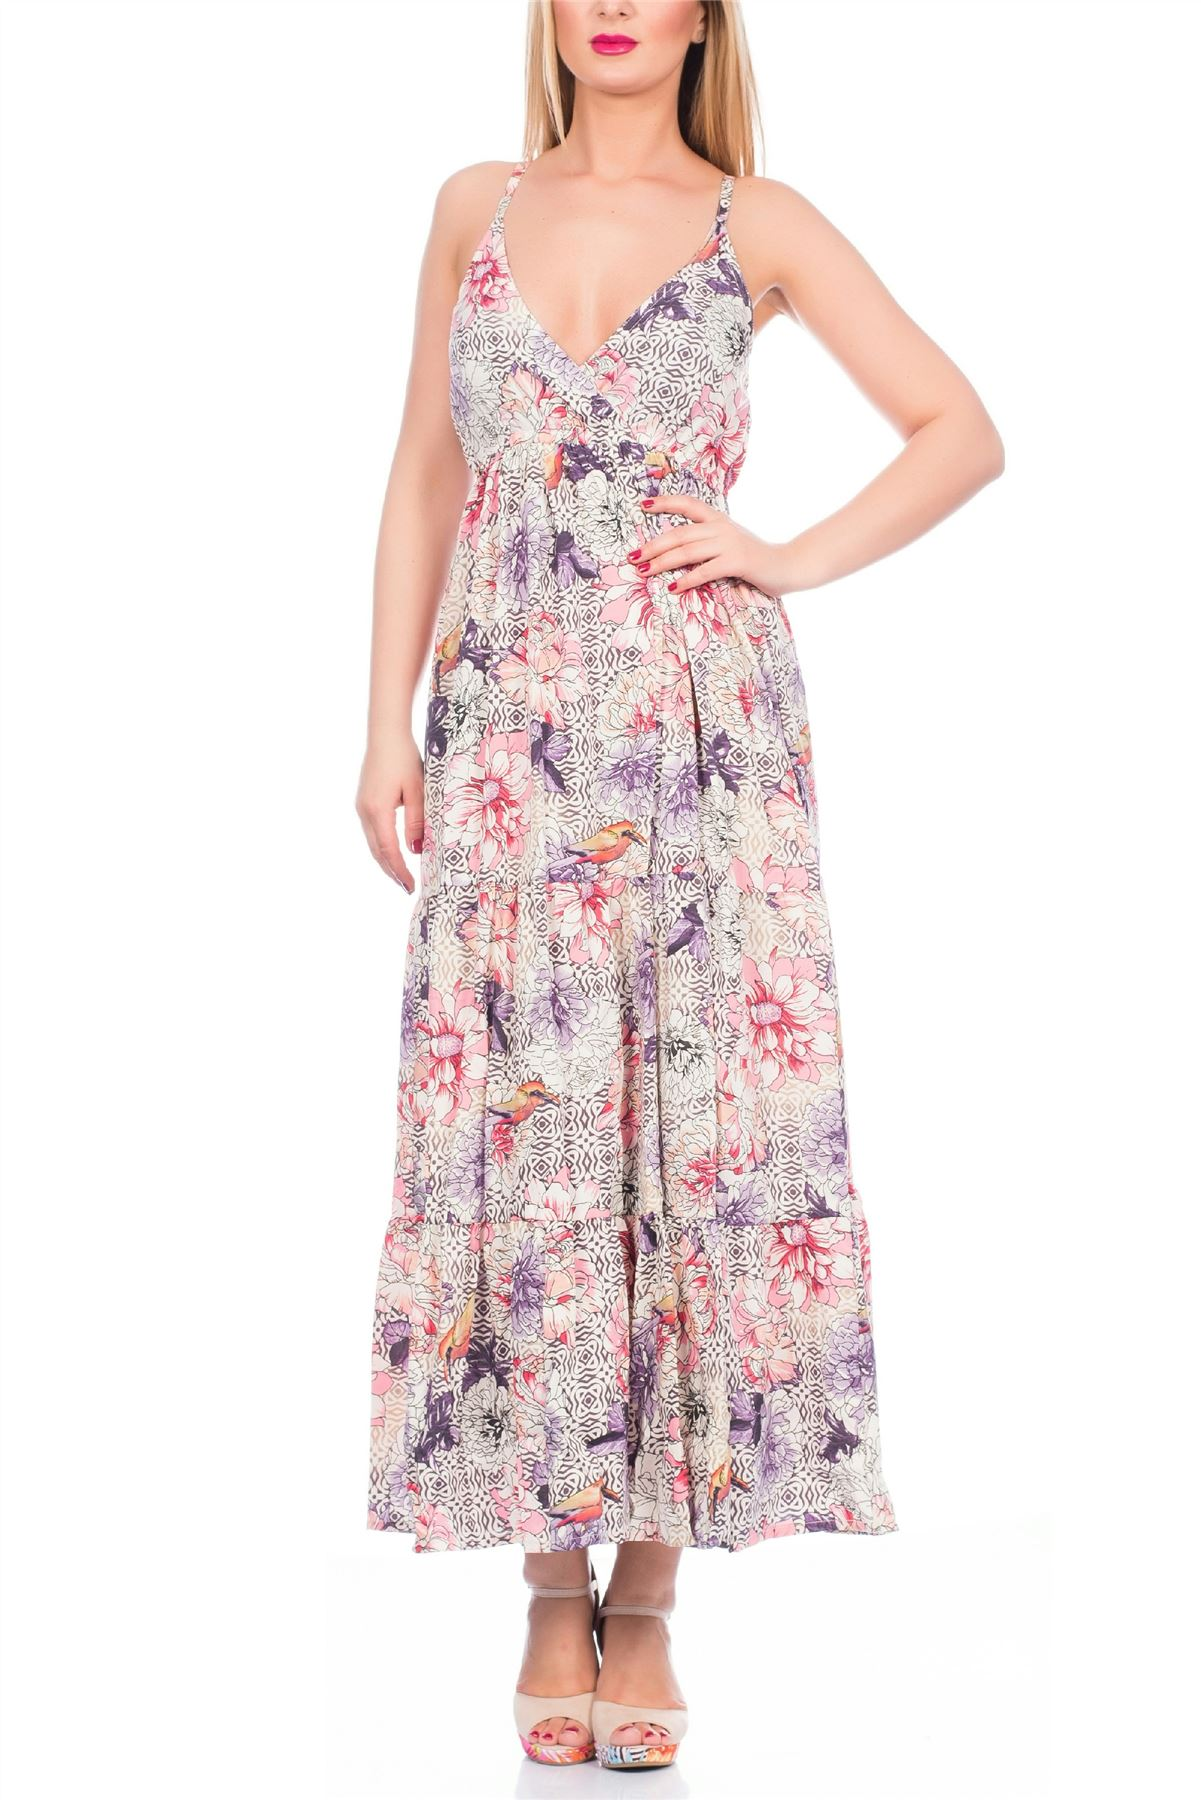 Shop latest Maxi Dresses on Sale at thrushop-9b4y6tny.ga More styles like Sexy Maxi Dresses, Long Maxi Dresses, buy Cheap Maxi Dresses online with high quality!